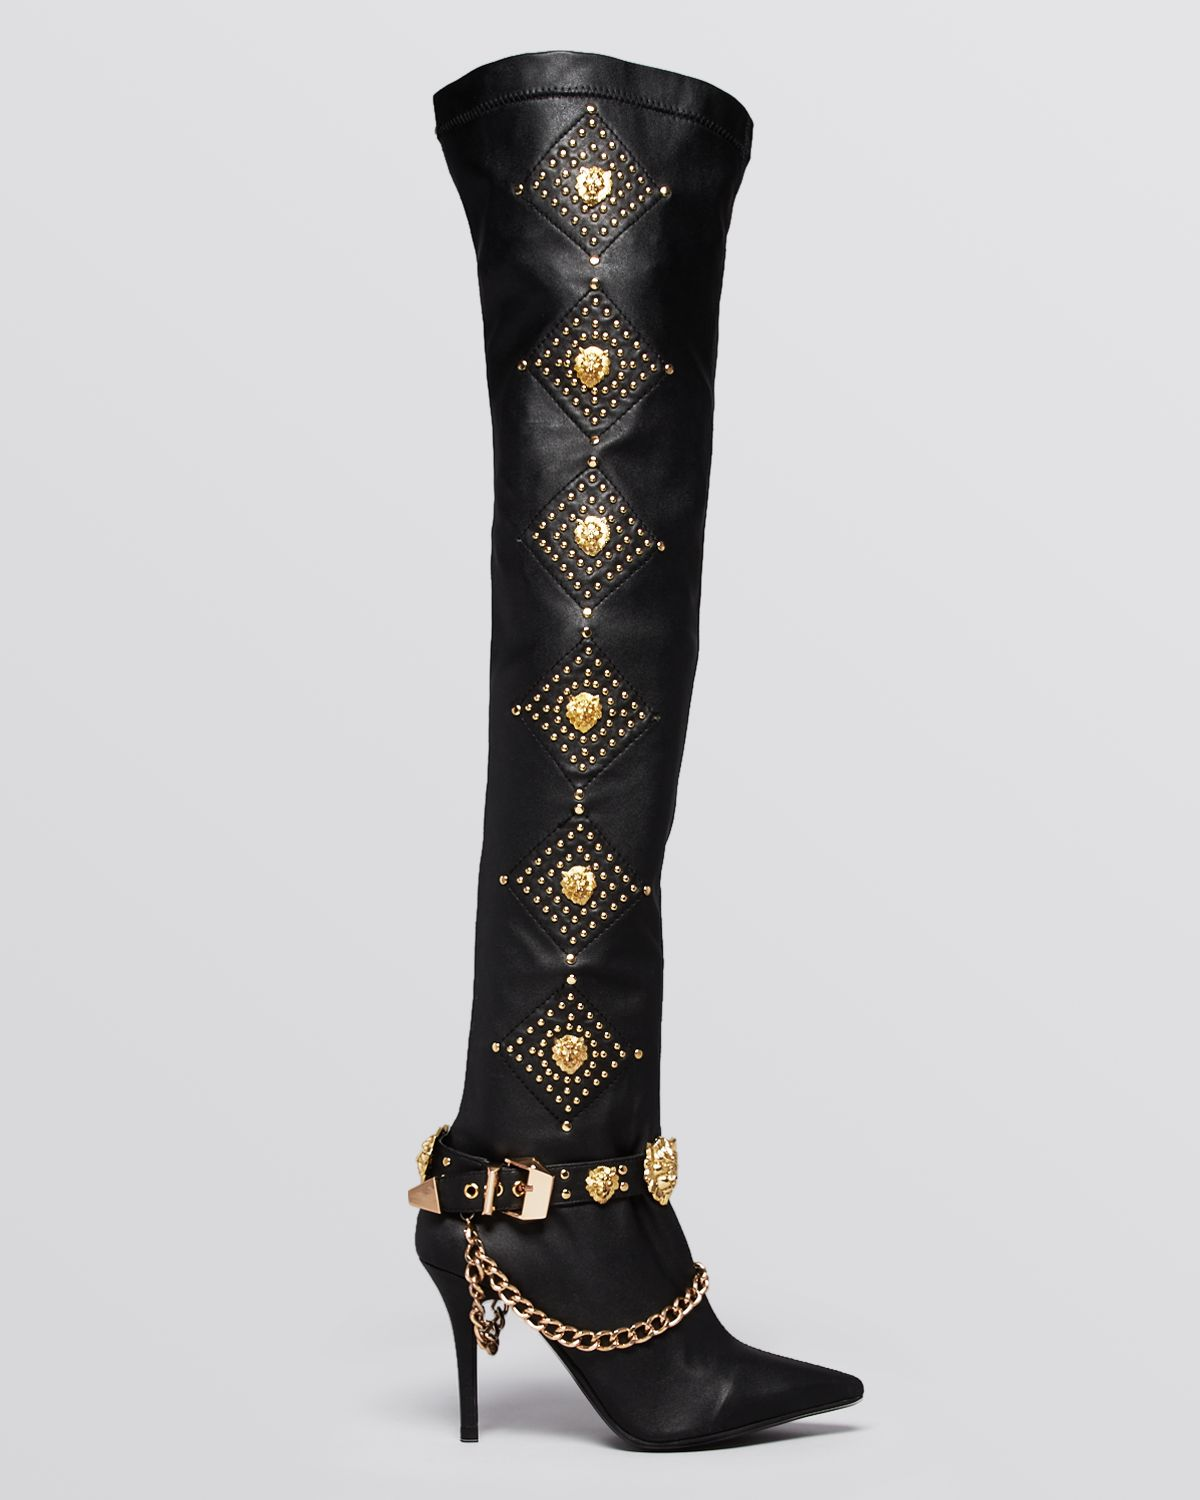 Jeffrey campbell Over The Knee Boots Purdy High Heel in Metallic ...